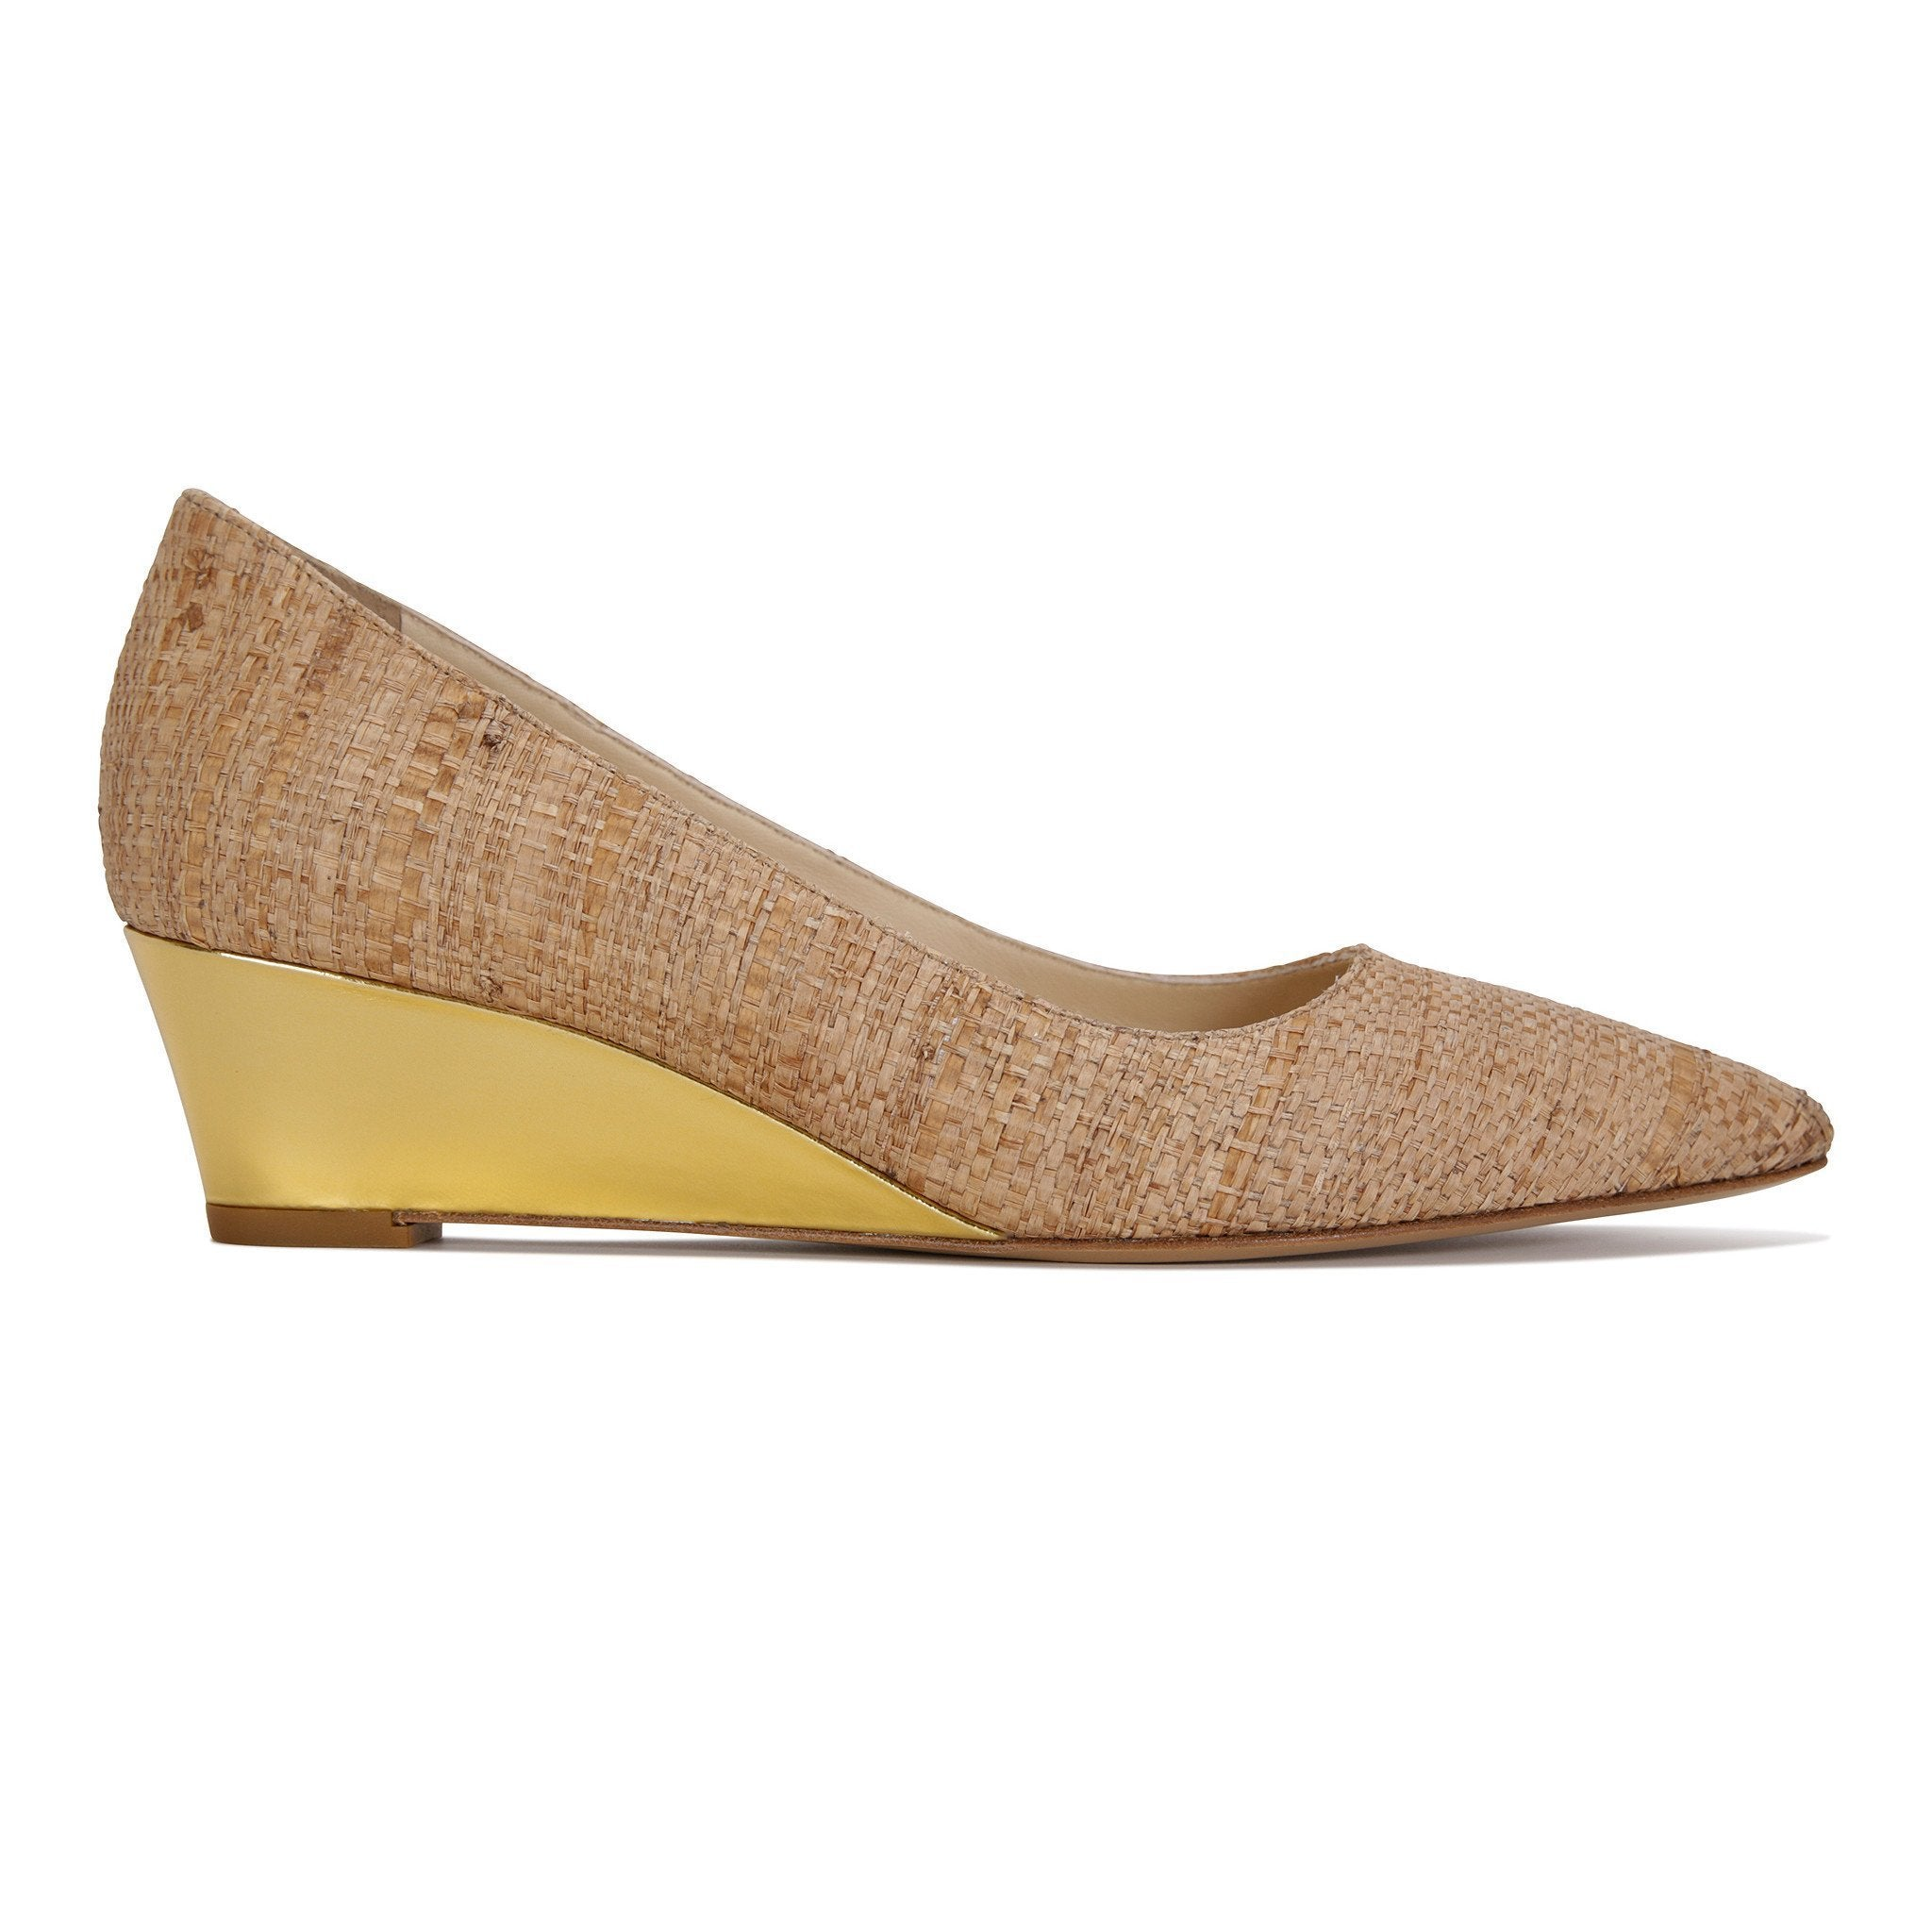 TRENTO - Raffia Natural + Metallic Gold - VIAJIYU Shoes